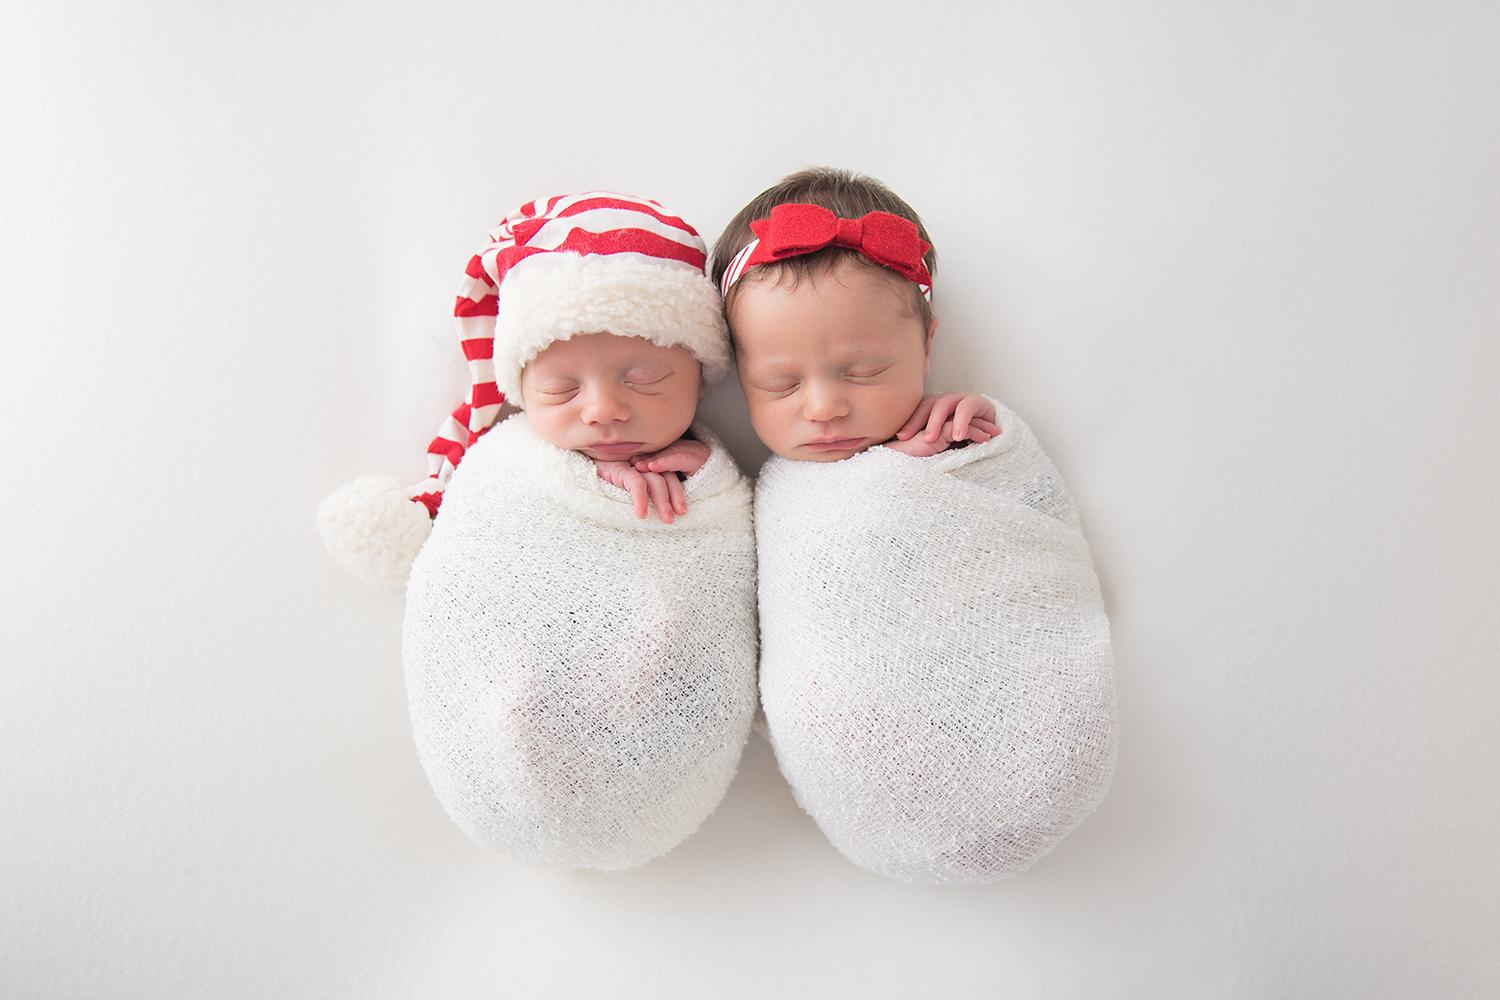 Holiday guests and newborn twins 7 tips to keep your babies healthy